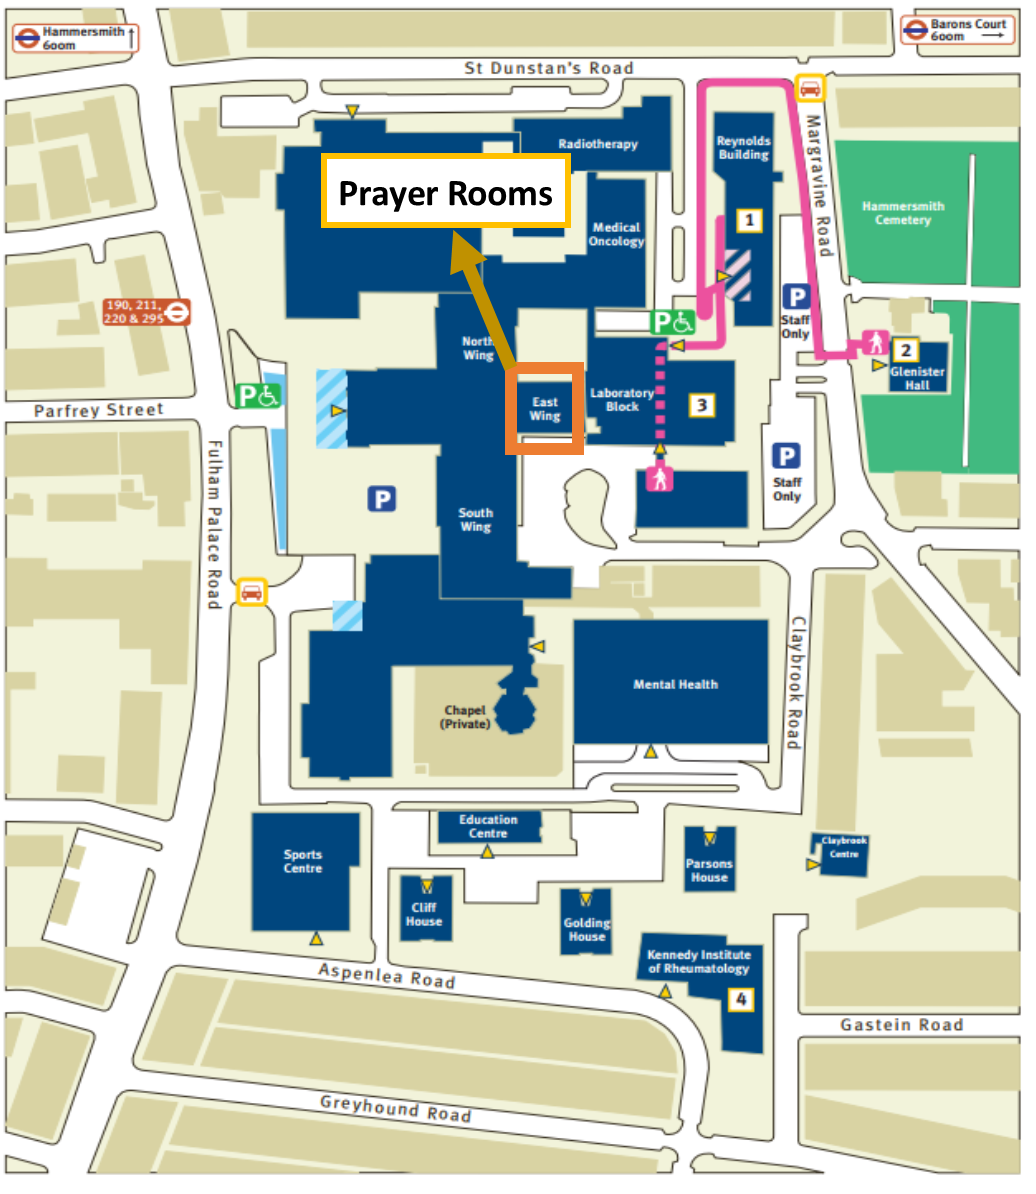 imperial college south kensington campus map Campus Map The Isoc imperial college south kensington campus map